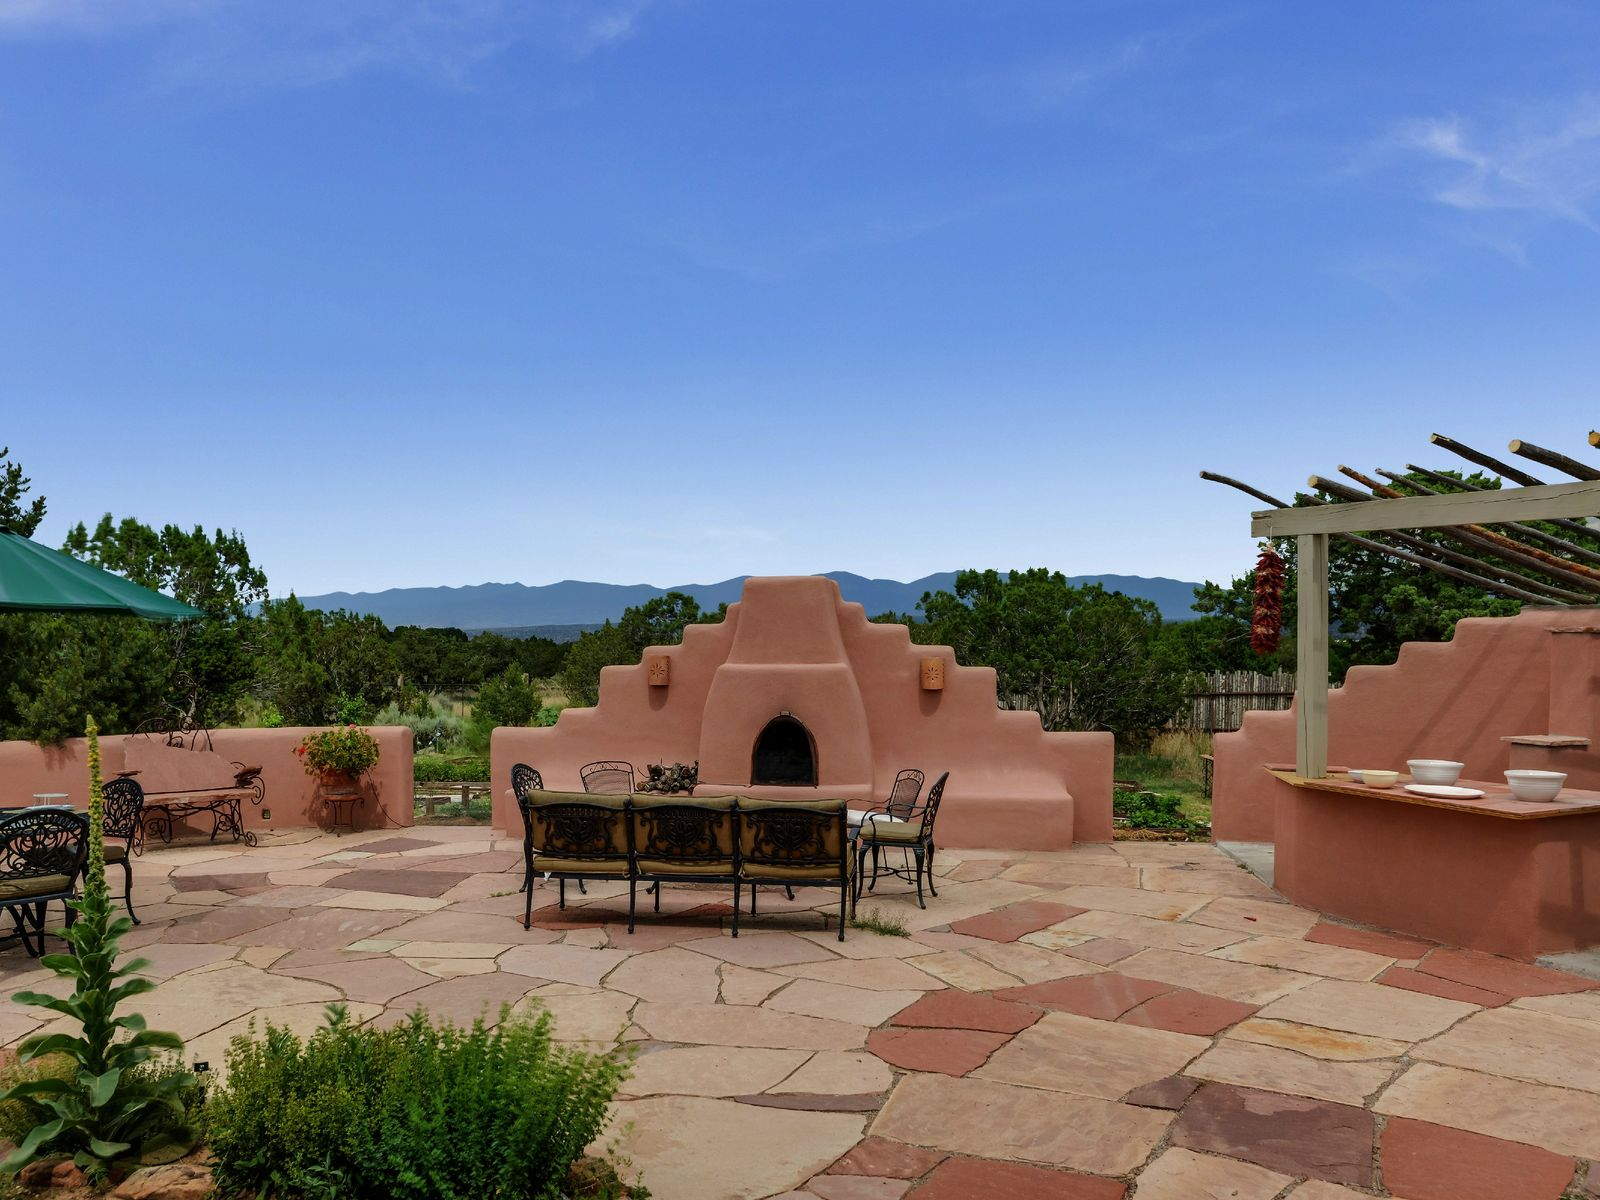 123 Monte Rey Drive North, Los Alamos NM Single Family Home - Santa Fe Real Estate